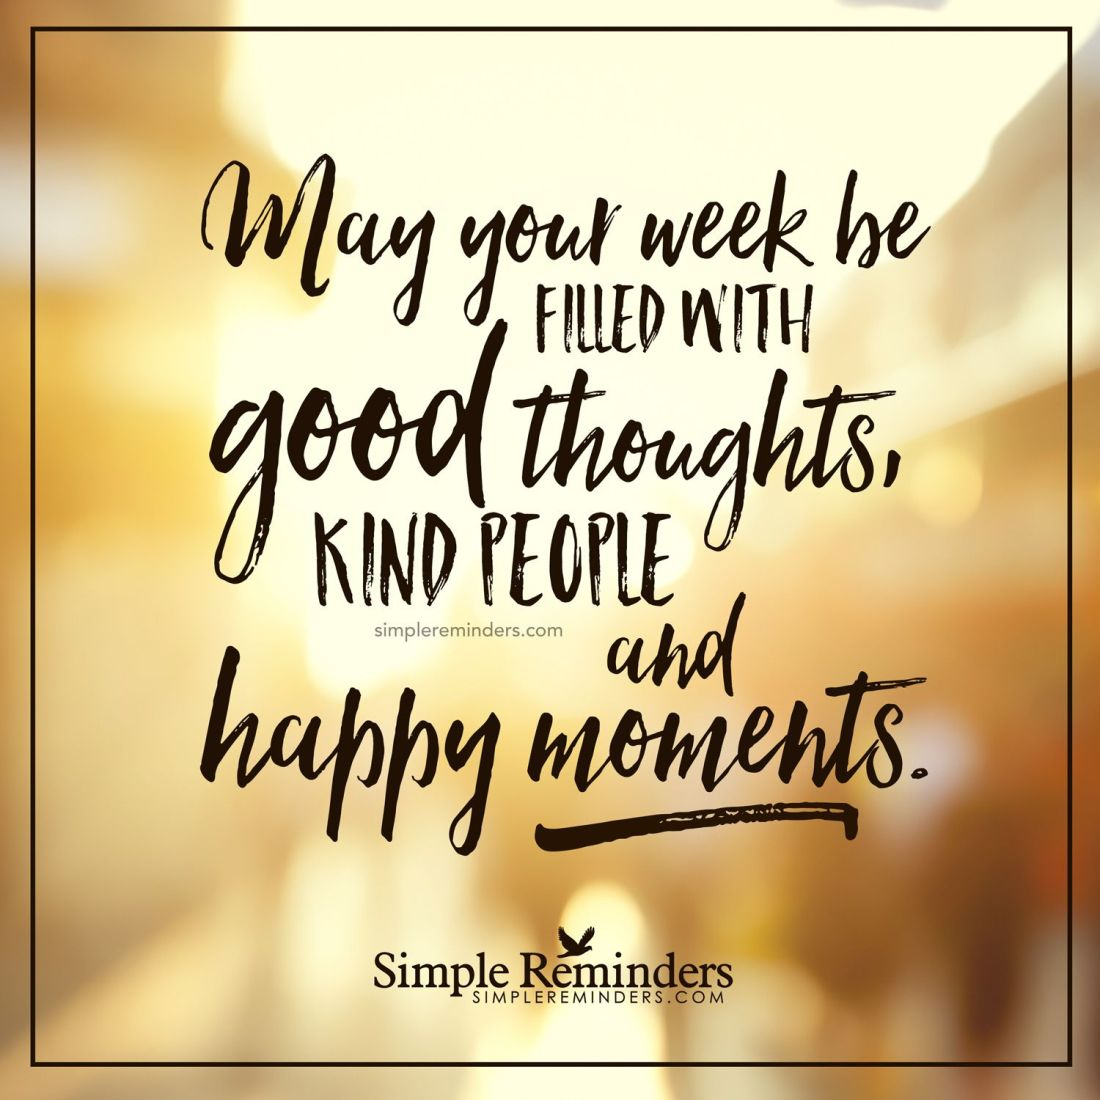 Fill your week with happy moments may your week be filled